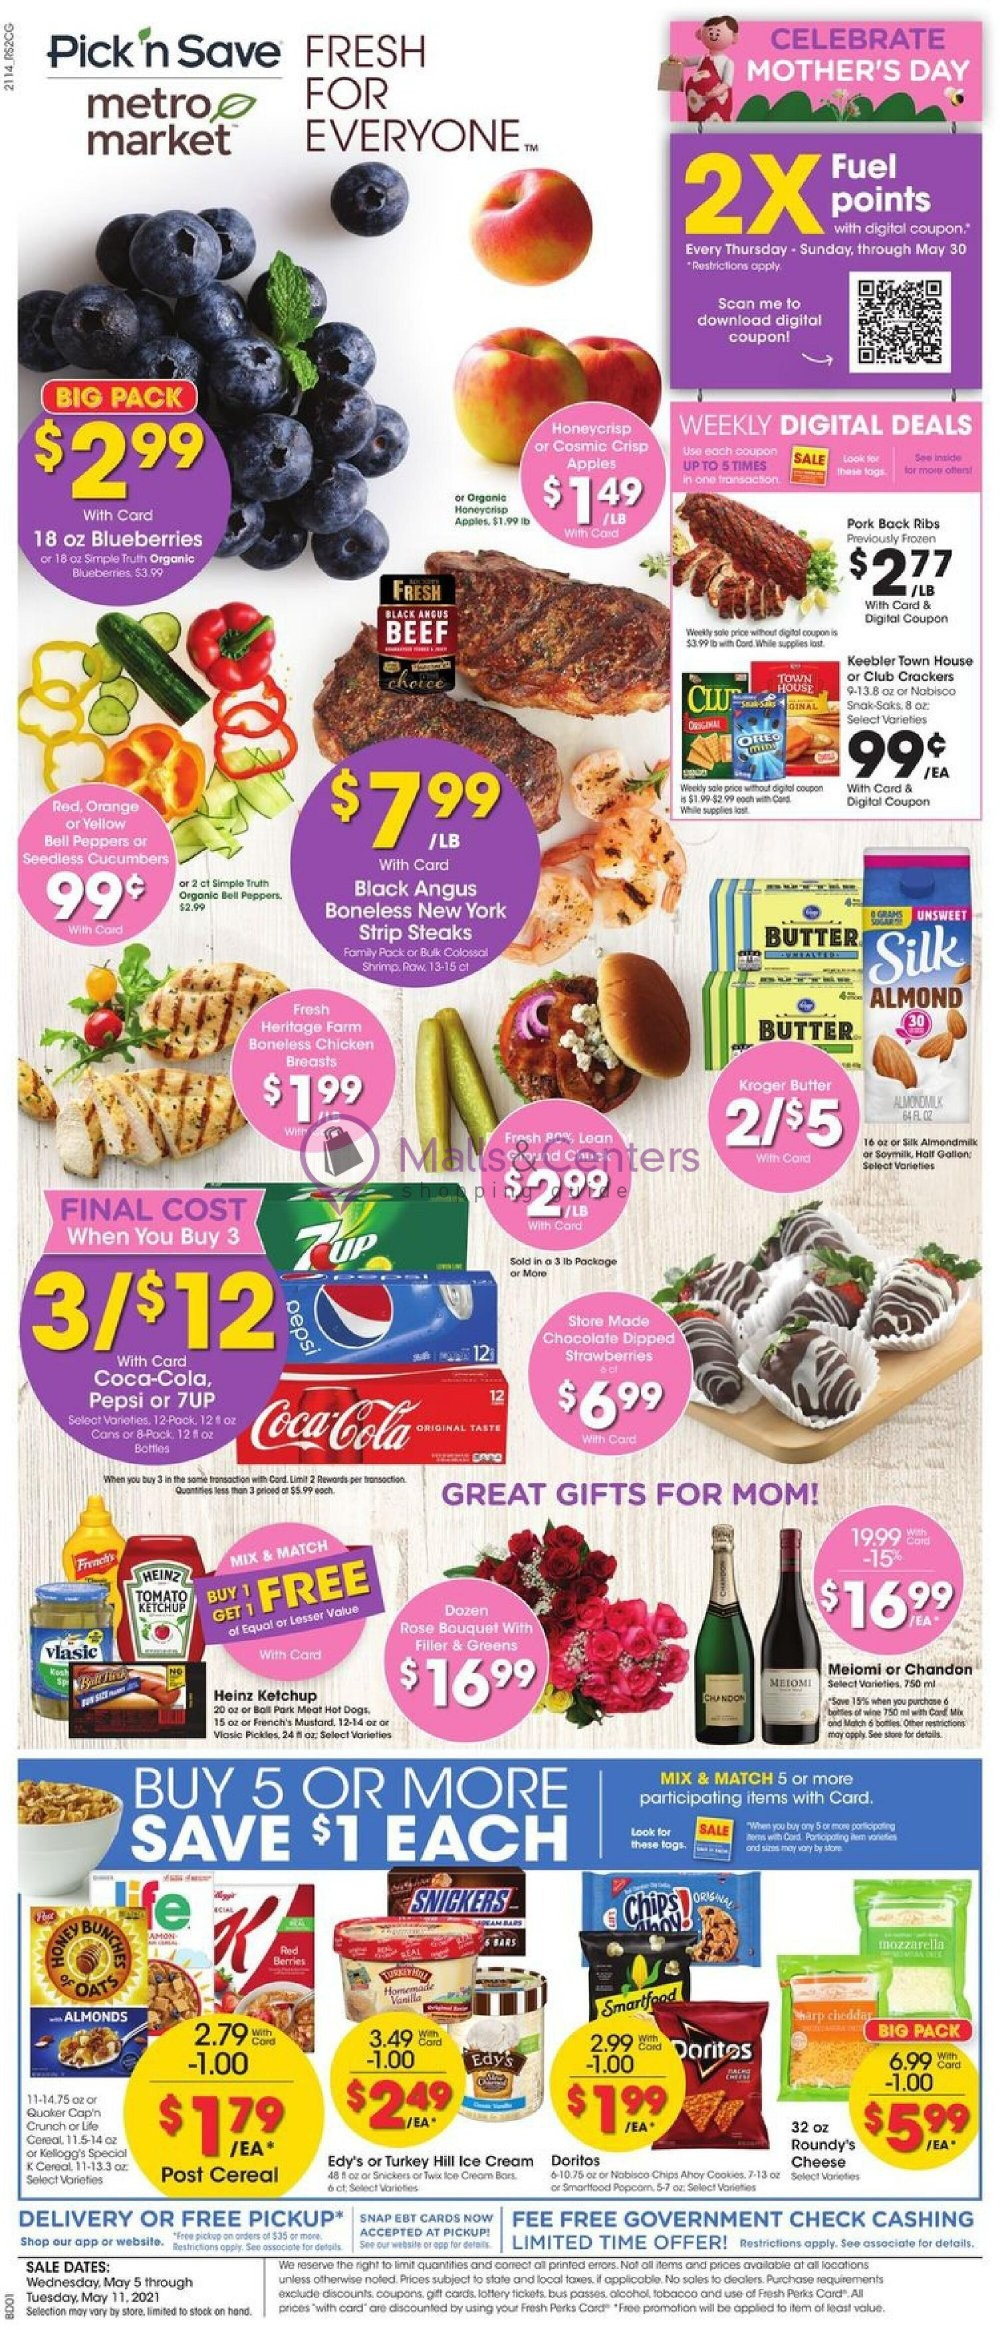 weekly ads Metro Market - page 1 - mallscenters.com